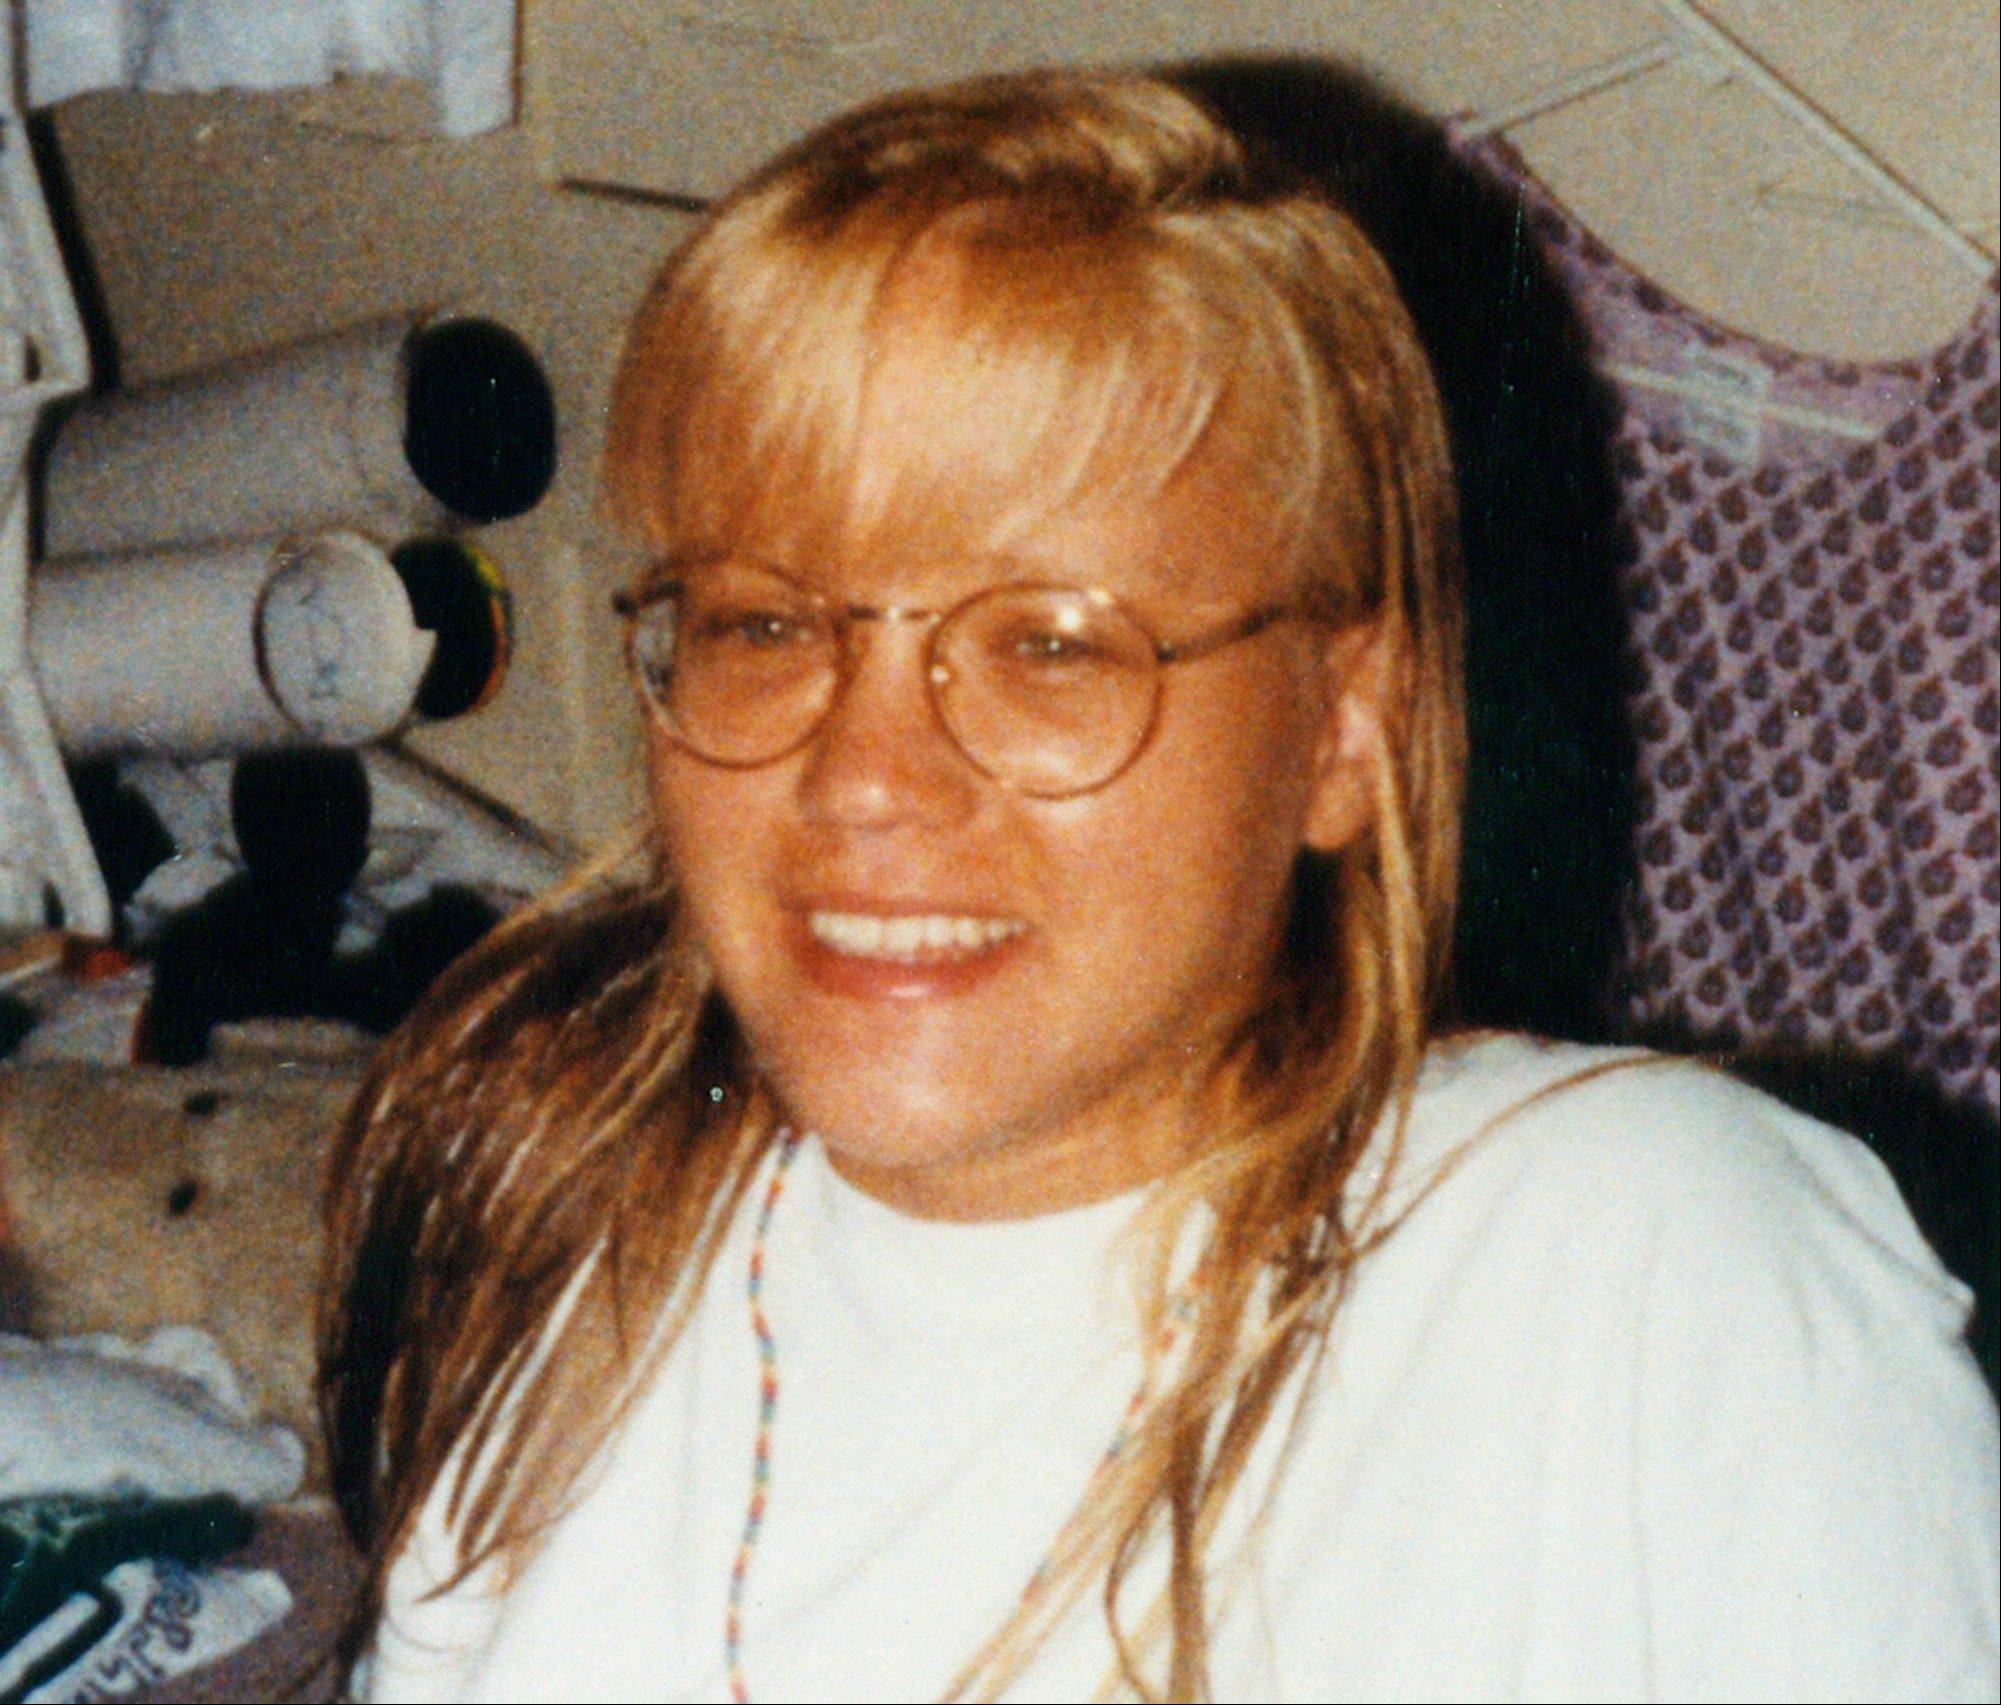 Tammy Zywicki in August 1992. It has been 20 years since Tammy was stabbed to death while returning to college in Iowa, and her mother, 70-year-old JoAnn Zywicki, who now lives in central Florida, has managed to get through the onslaught of birthdays, holidays and special occasions that often torment families of the murdered. What gnaws her mother is the elusiveness of whoever killed her daughter in August 1992 after her car broke down along an Illinois freeway. Tammy's body was found more than a week later hundreds of miles away in southwestern Missouri, wrapped in red blanket sealed in duct tape.